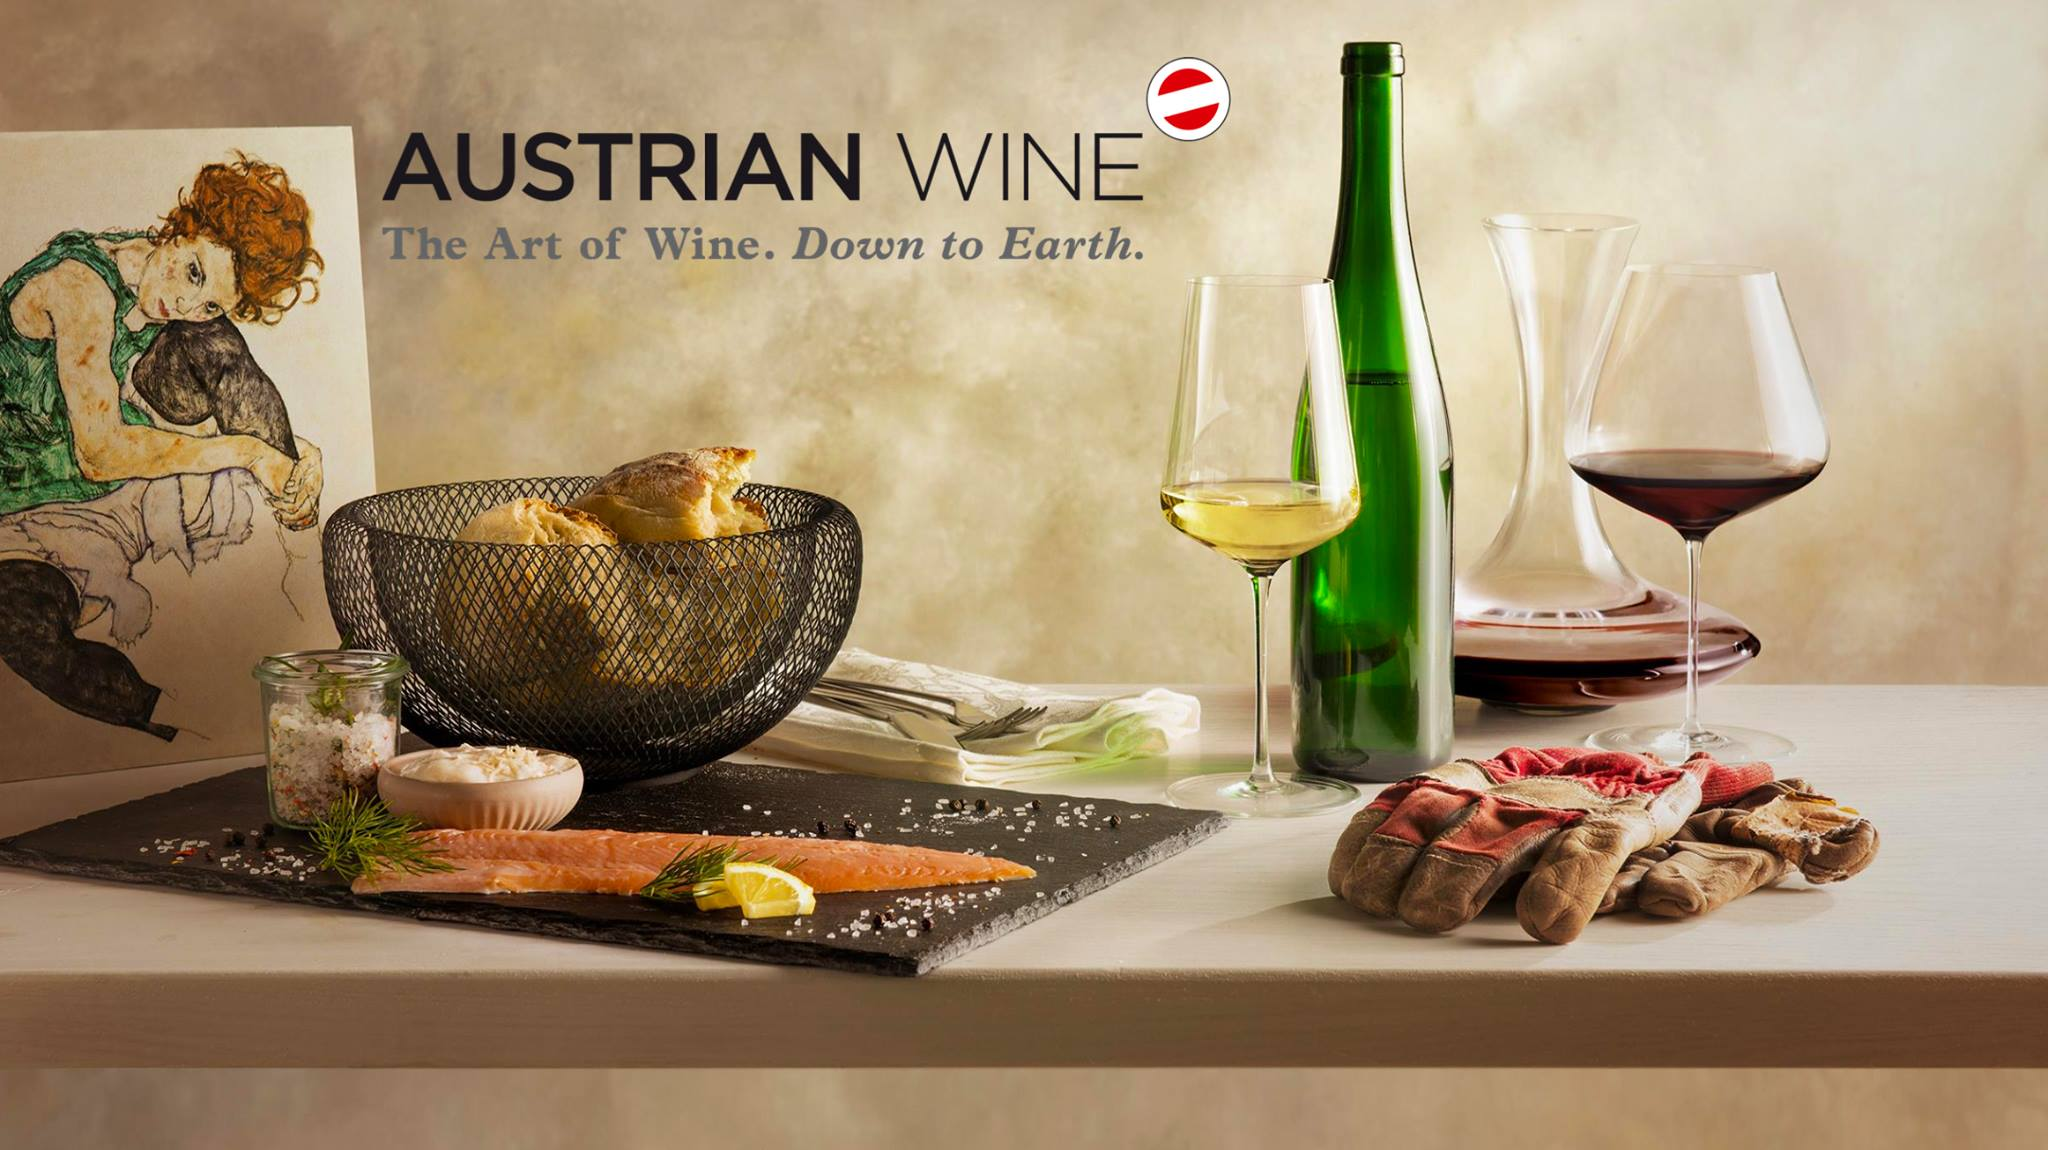 Austrian Wine is Platinum Sponsor of the 2019 Sommelier World Championship